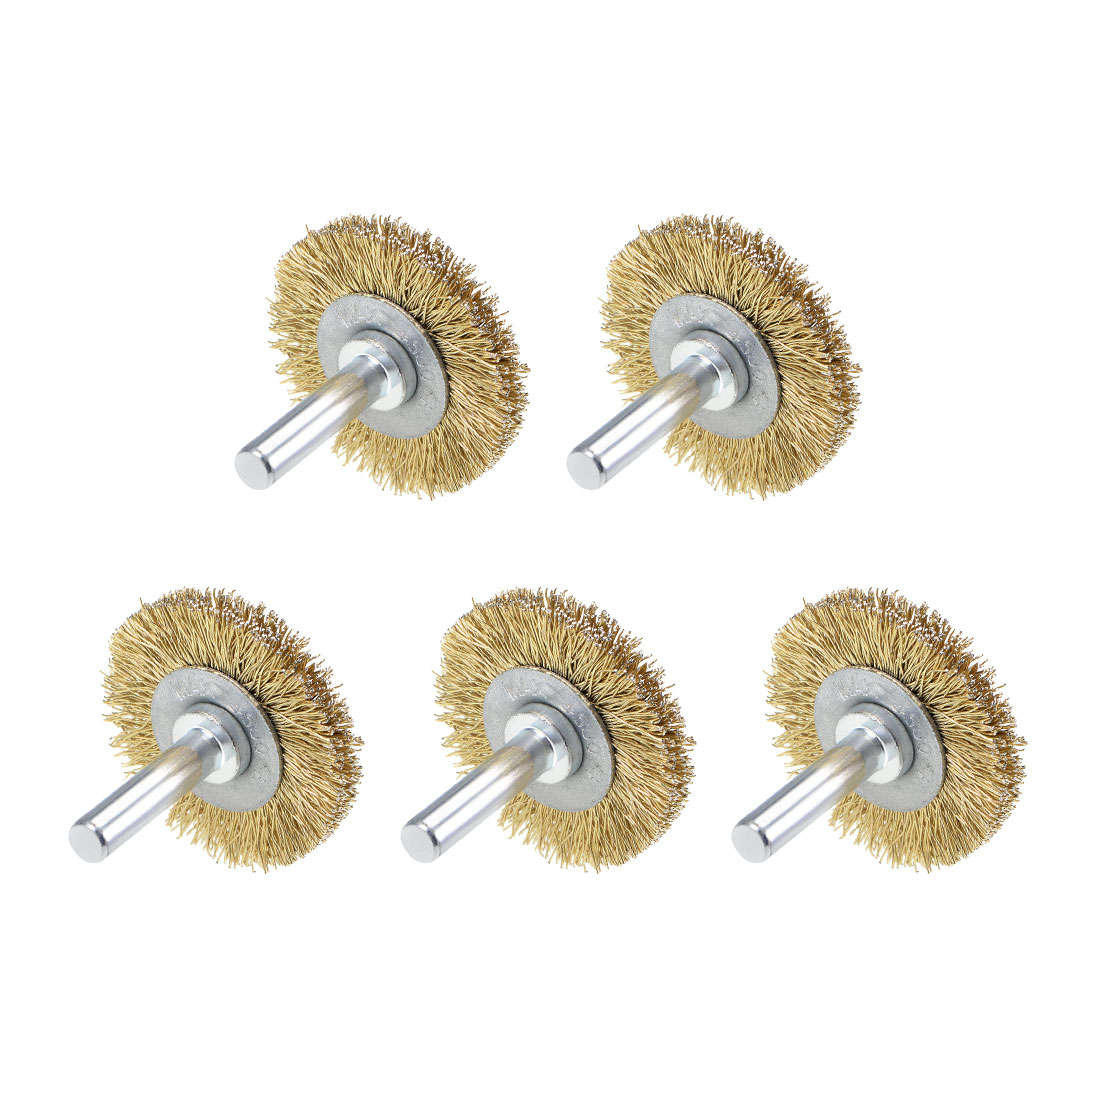 1-1/2-Inch Wire Wheel Brush Bench Brass Plated Crimped Steel 1/4-Inch Shank 5Pcs